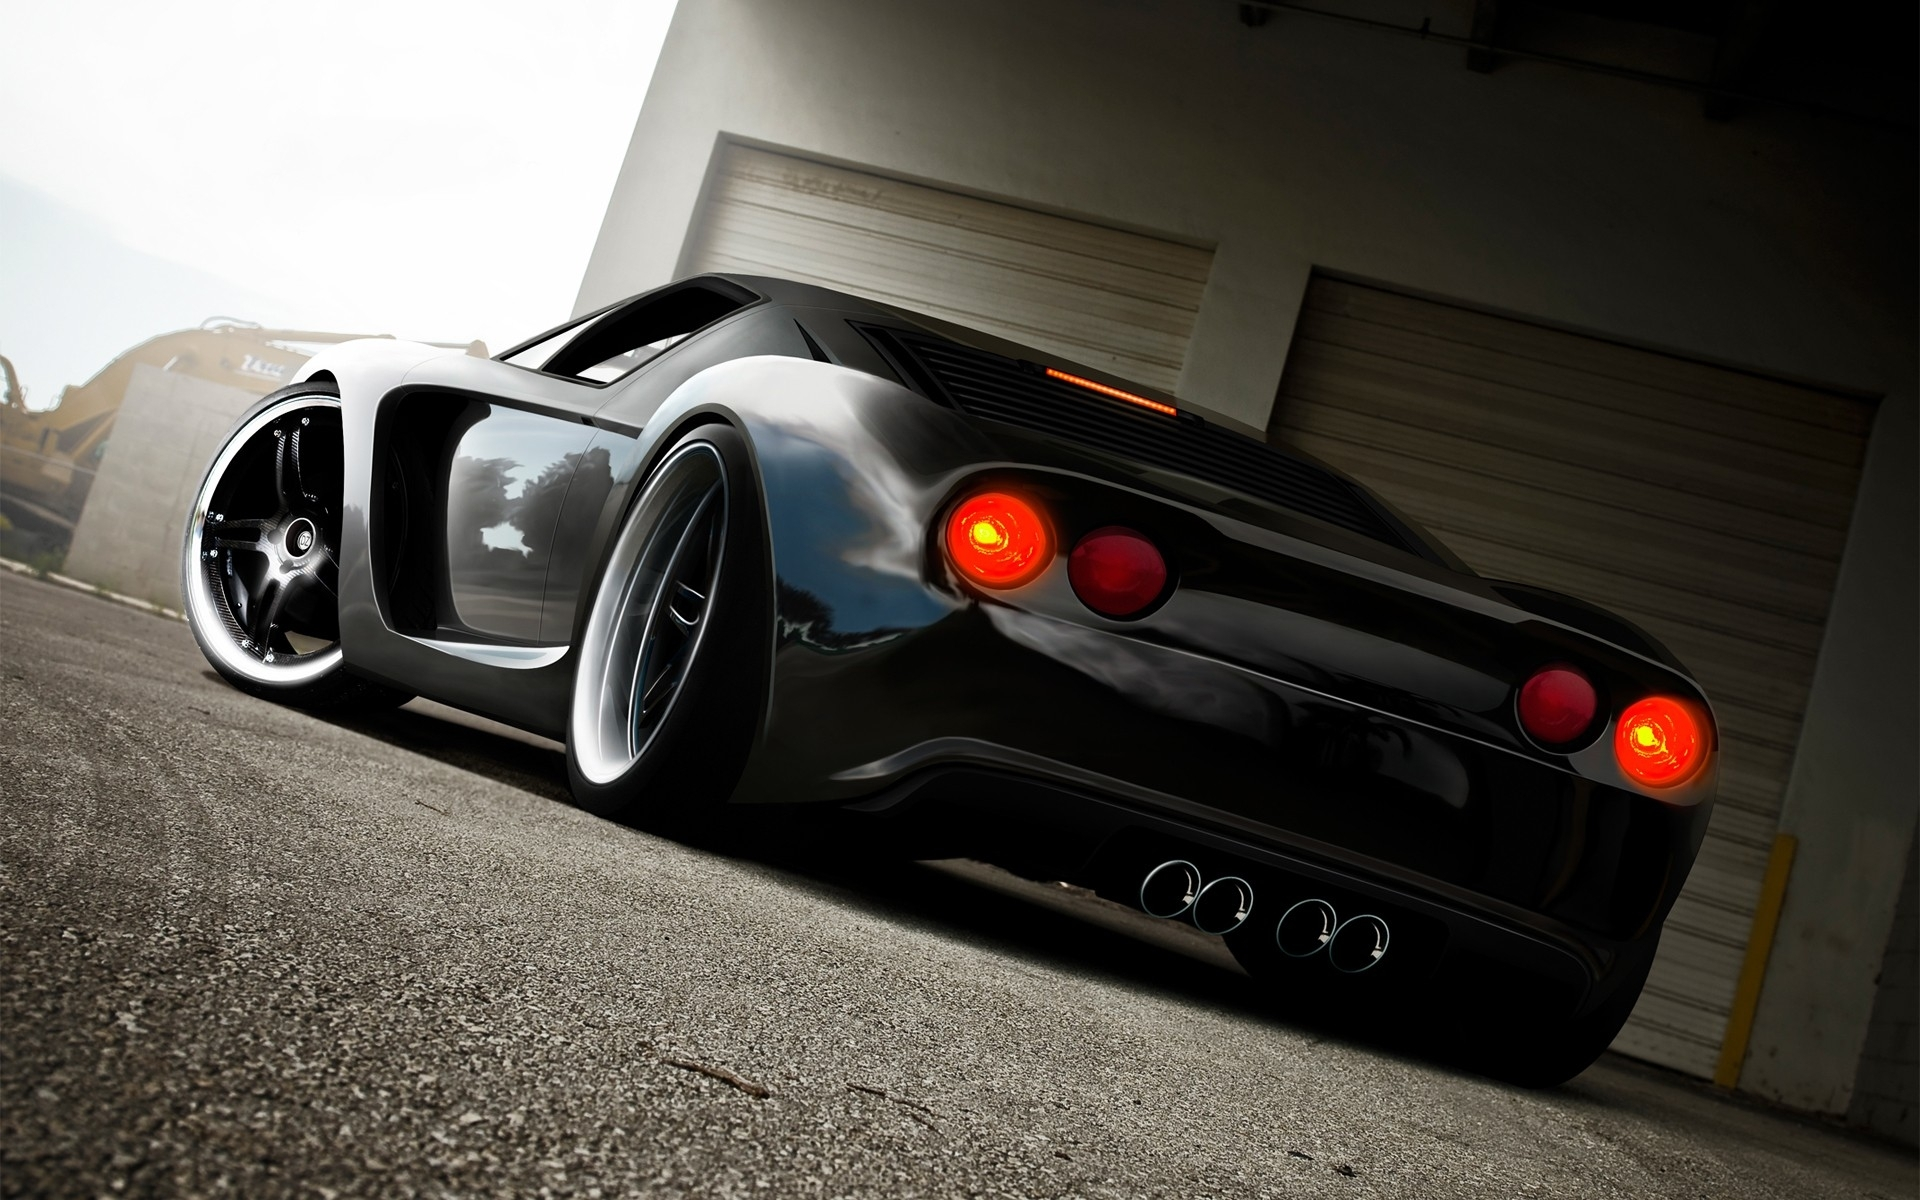 GT DZCP supercar exotic cg digital art tuning wallpaper background 1920x1200